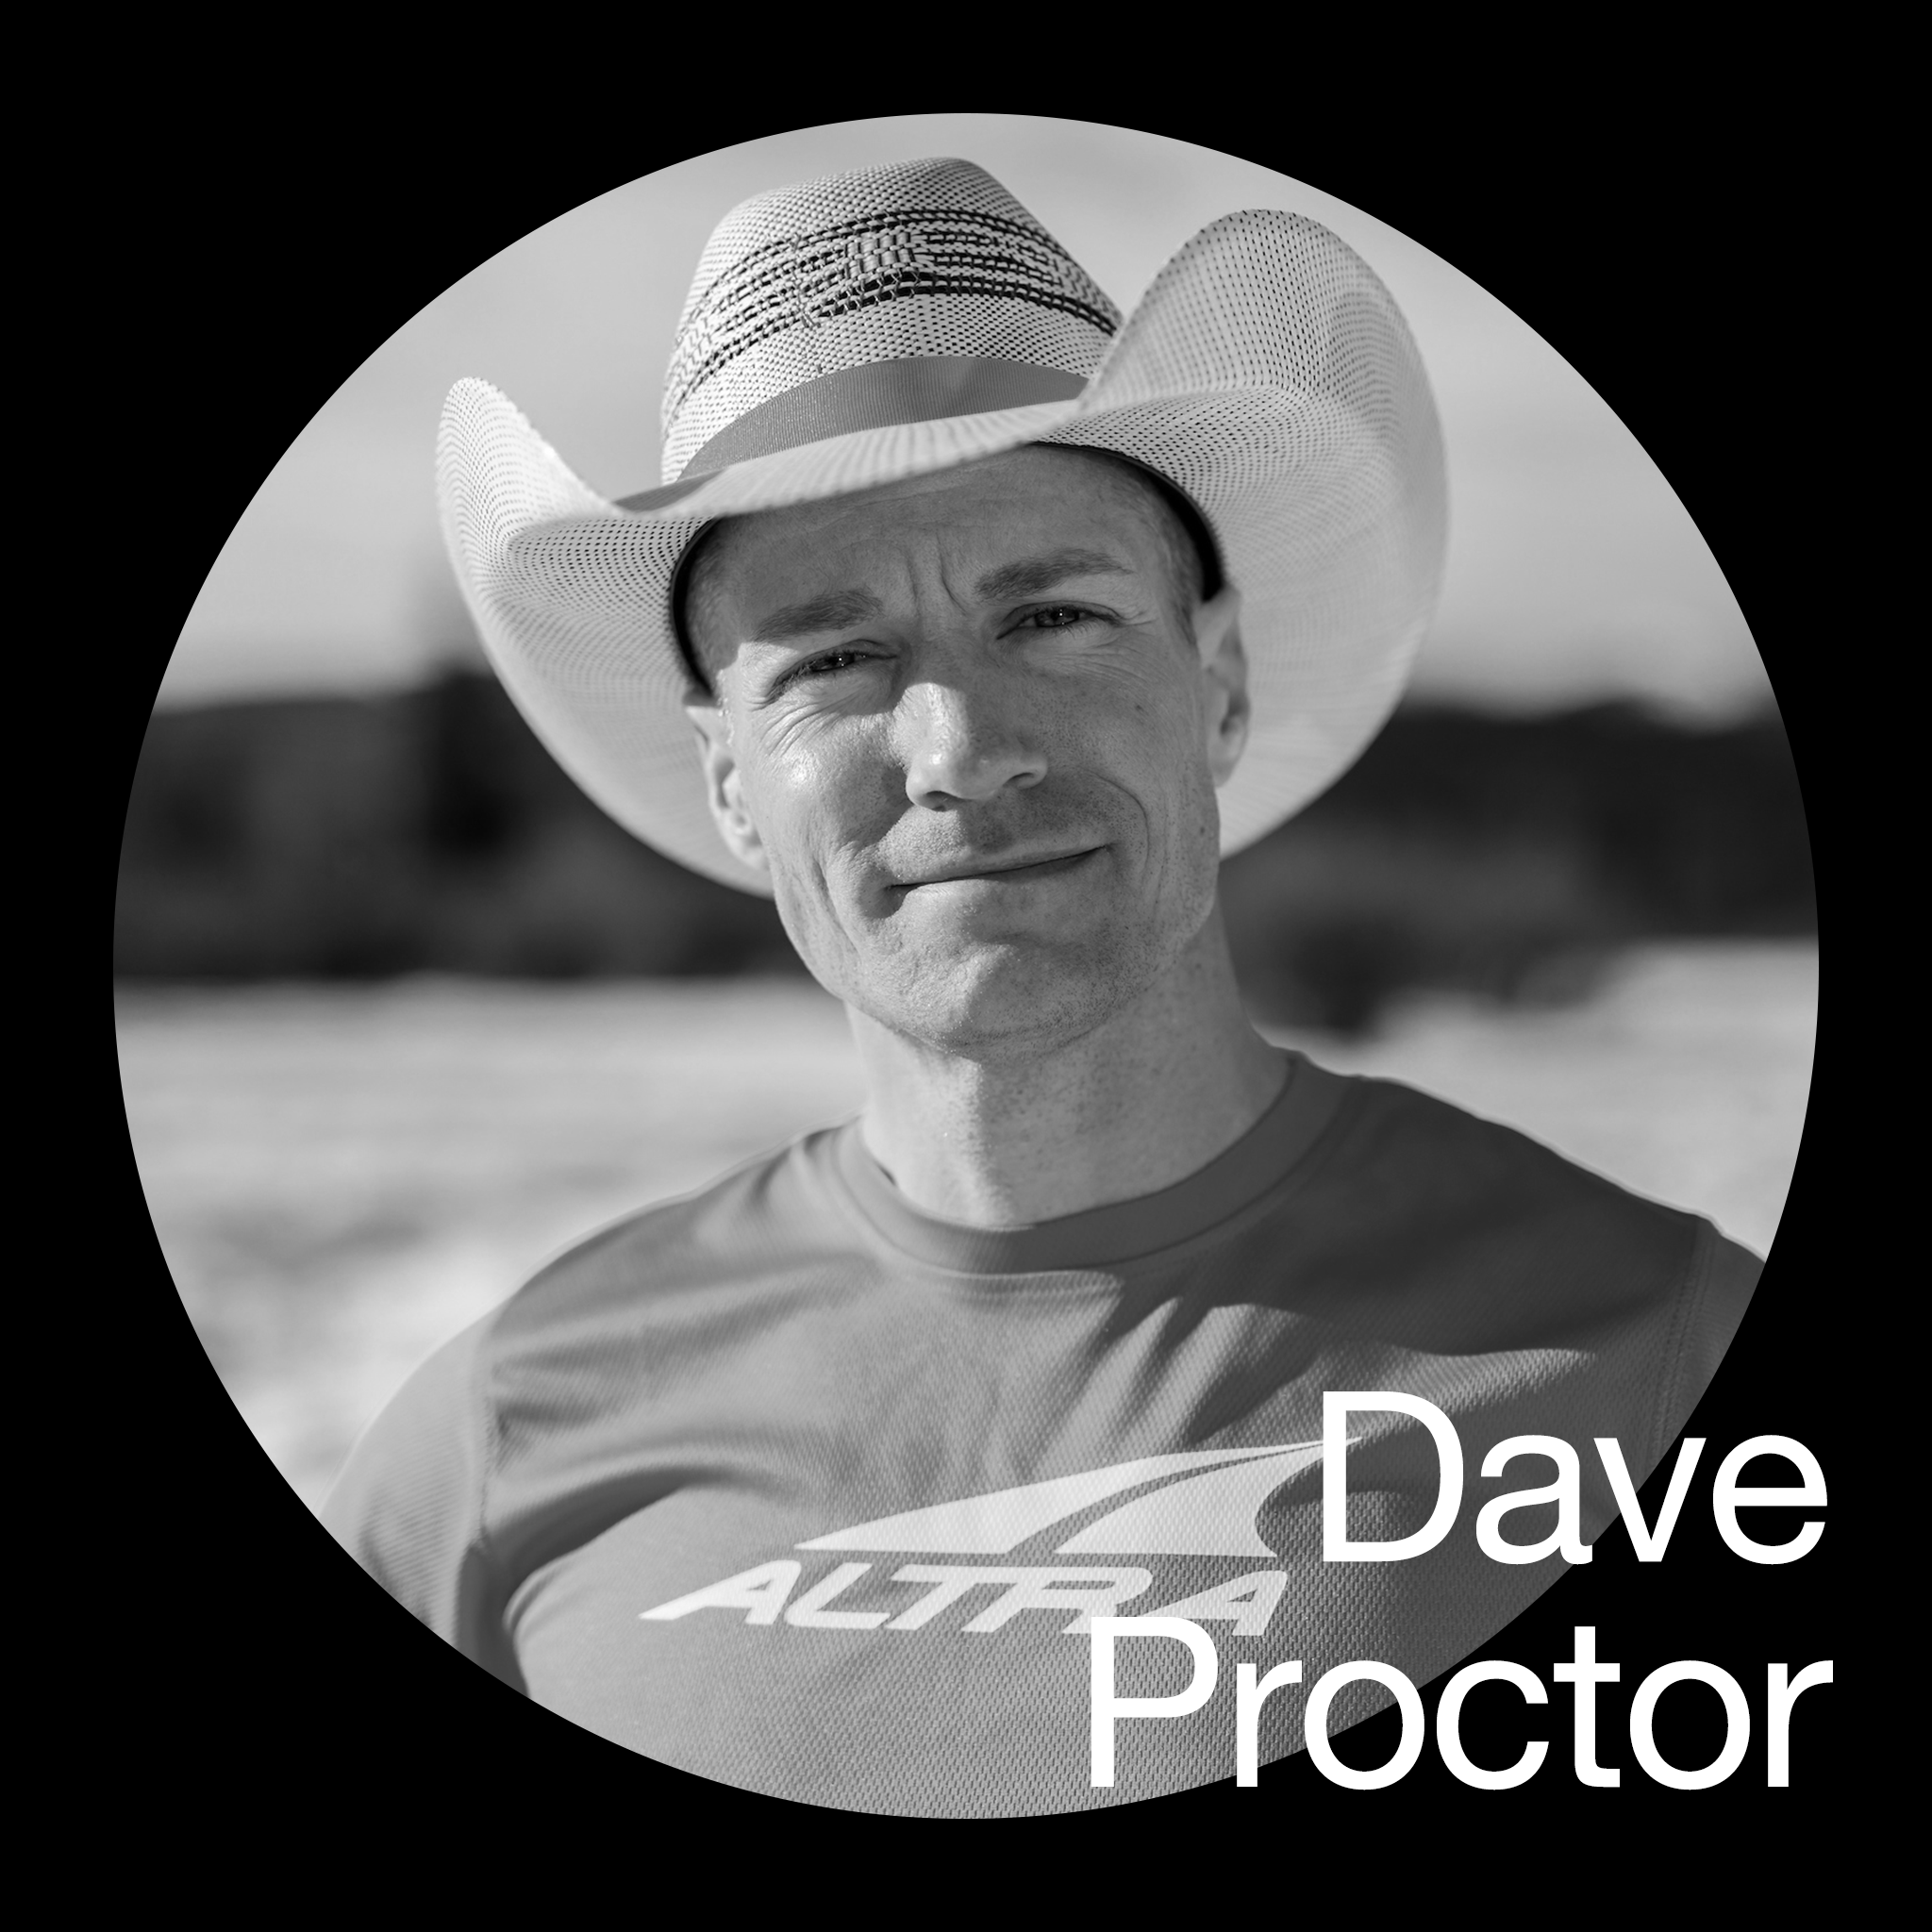 Dave Proctor | The Limitless Heart